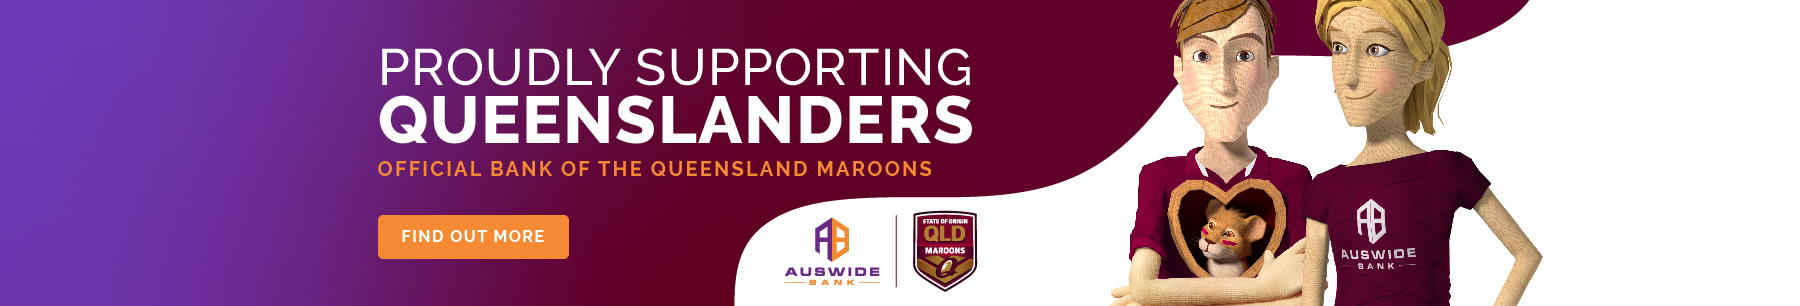 Proudly Supporting Queenslanders